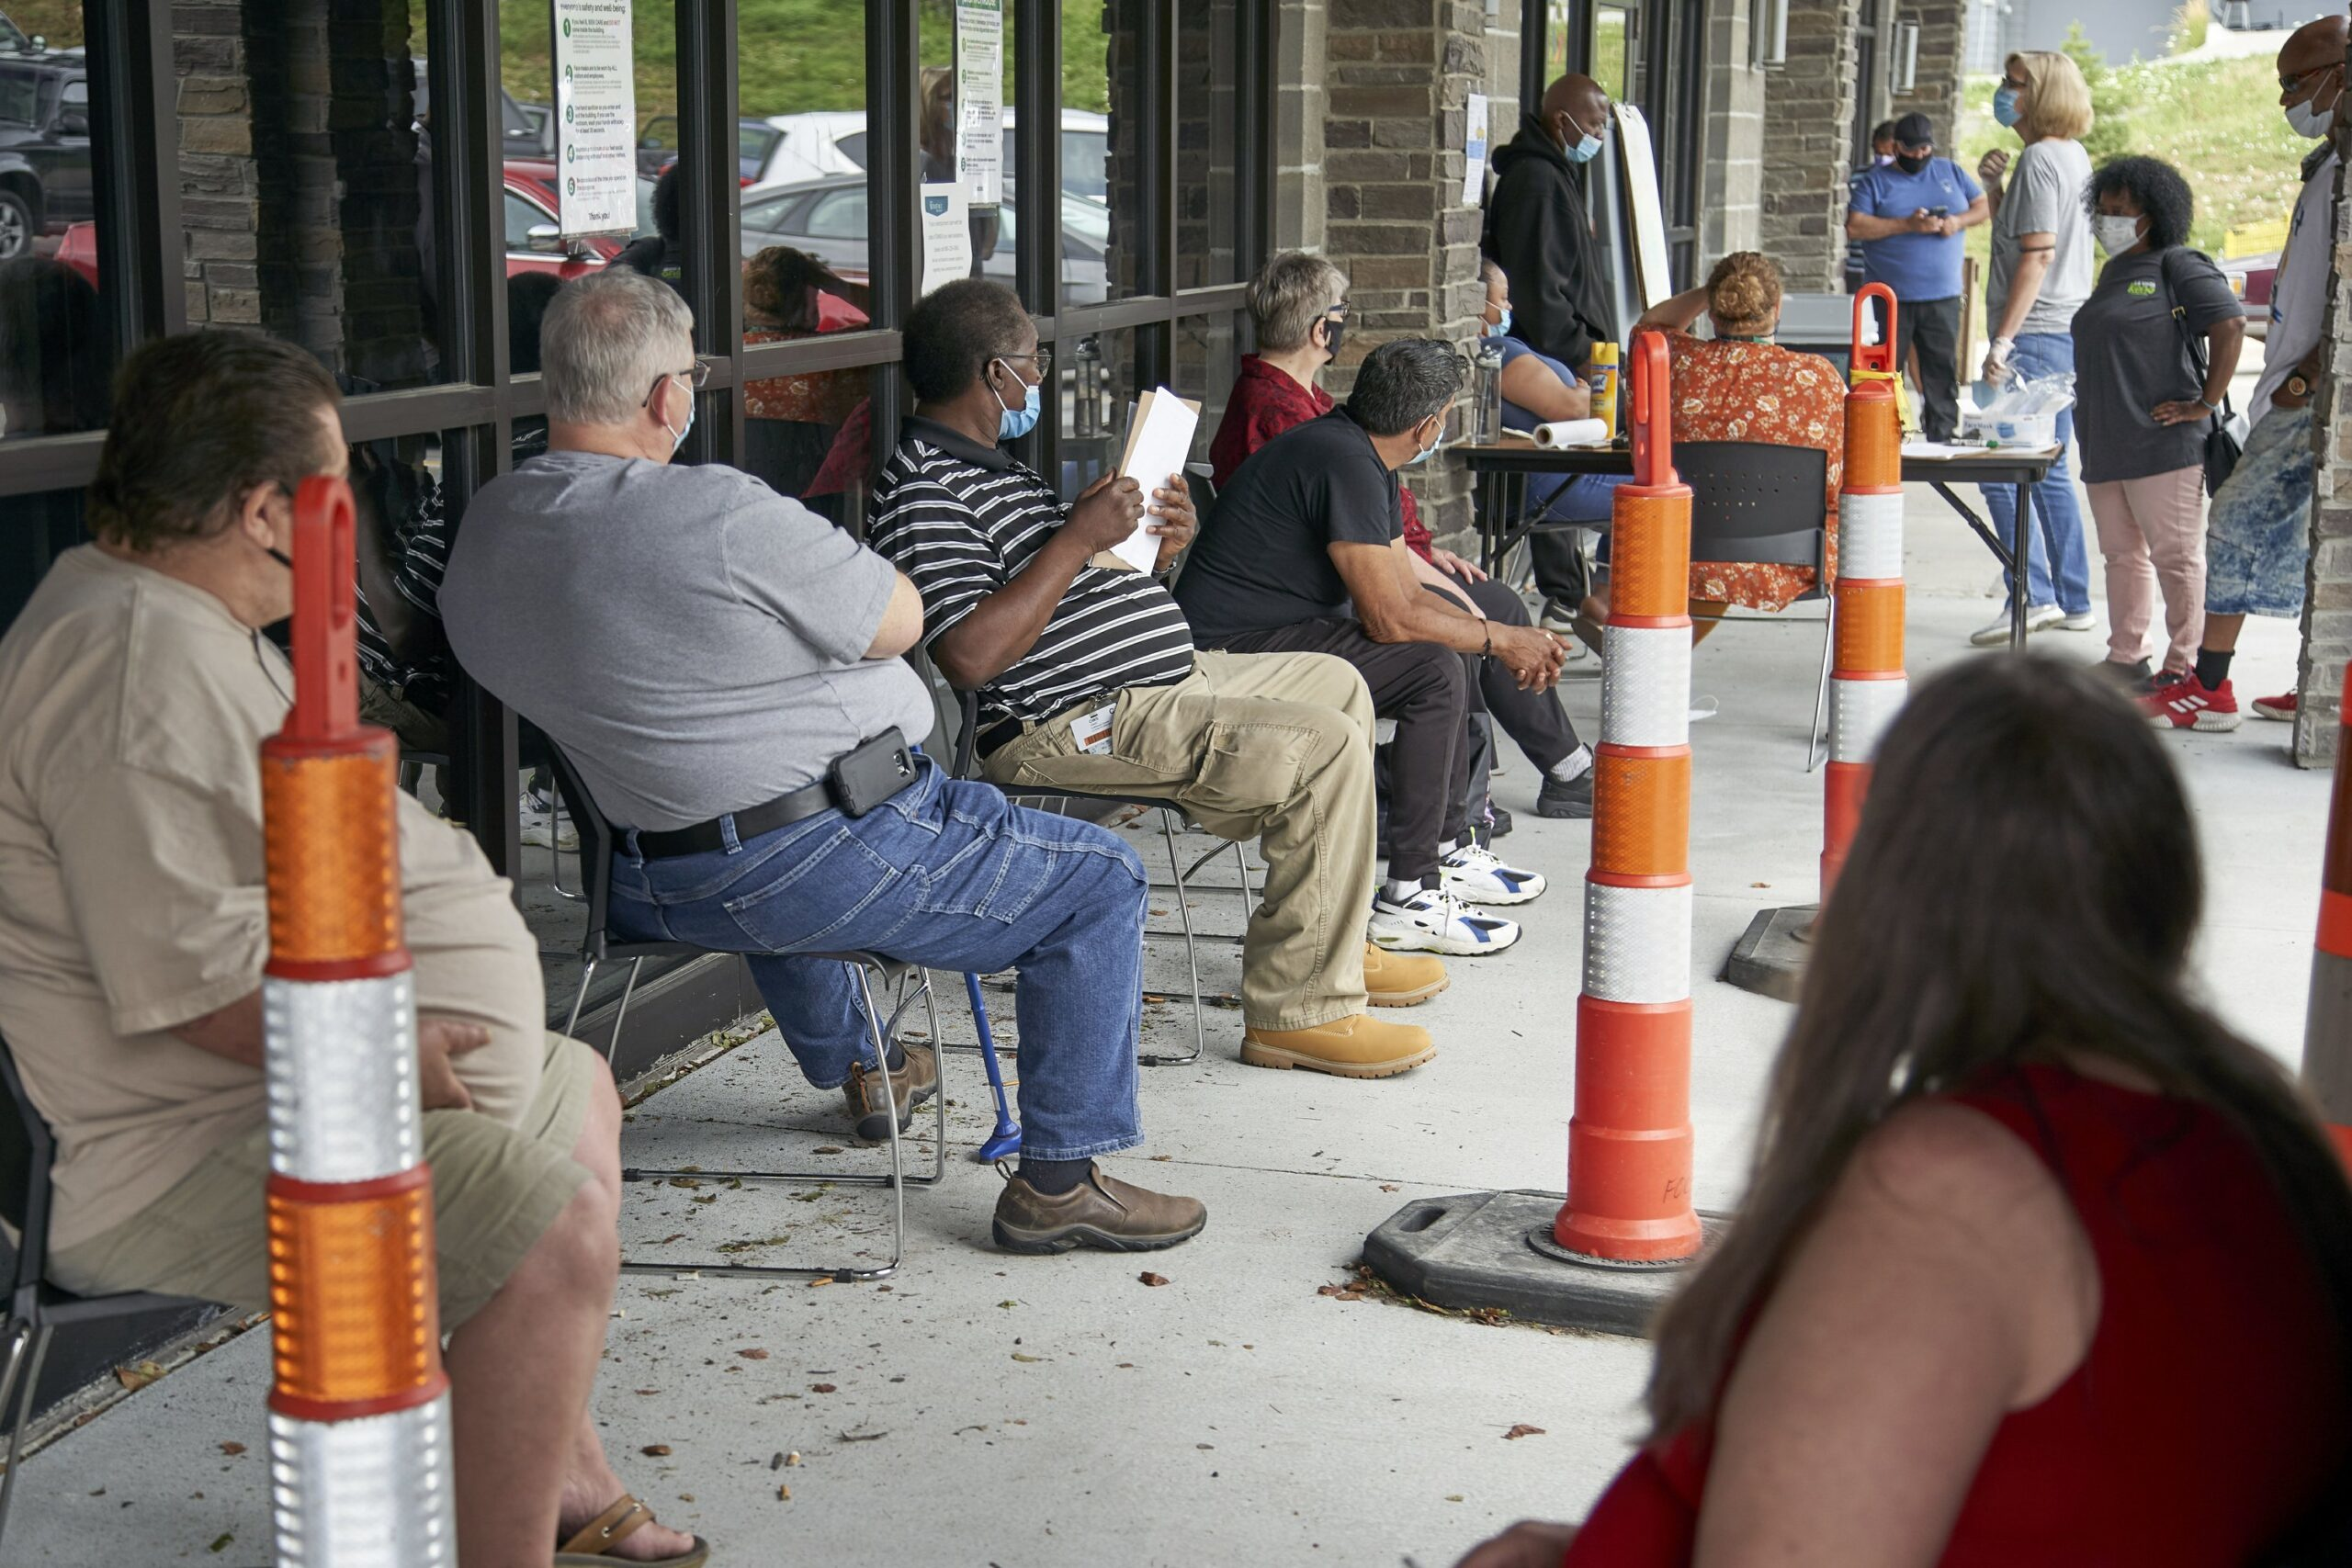 GOP's jobless benefit plan could mean delays, states warn 2